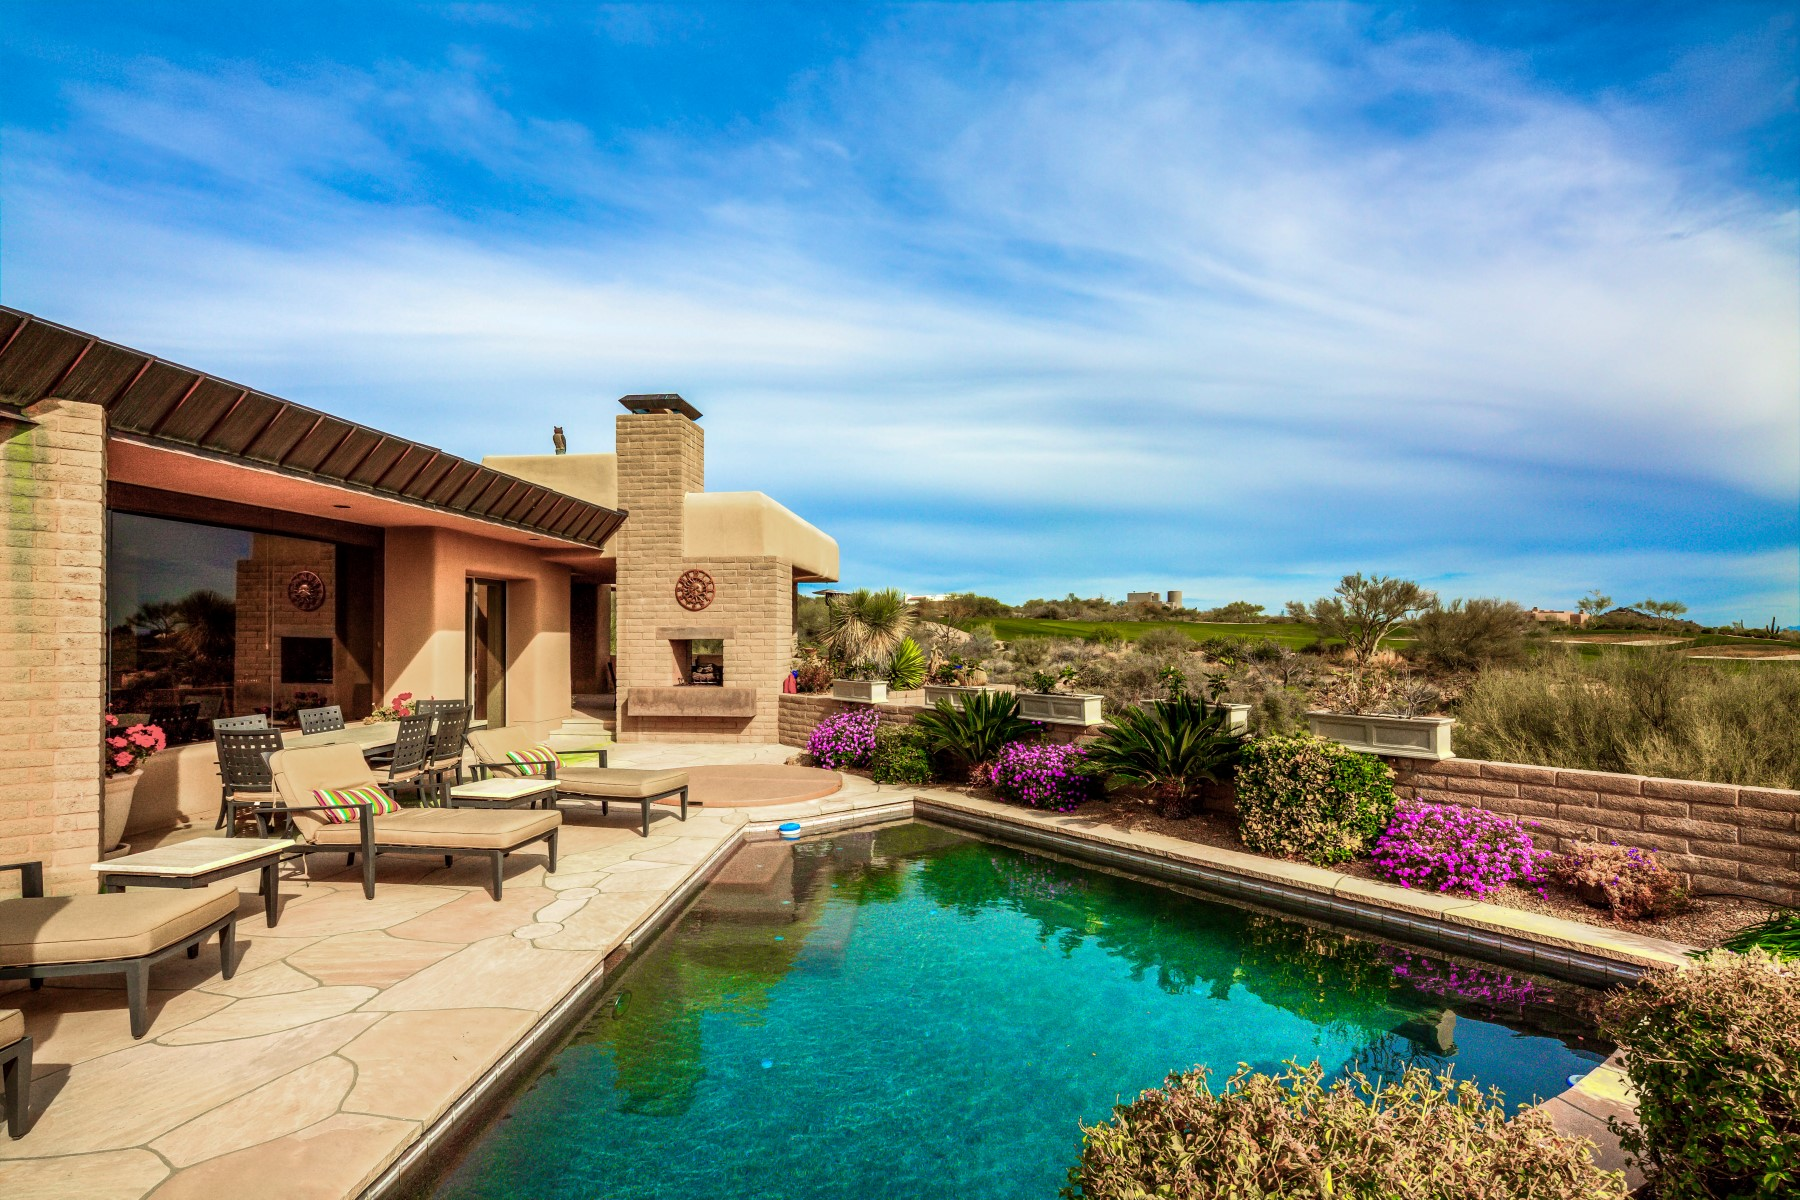 Single Family Home for Sale at Southwest Contemporary in Desert Mountain 11055 E Graythorn Drive, Scottsdale, Arizona, 85262 United States